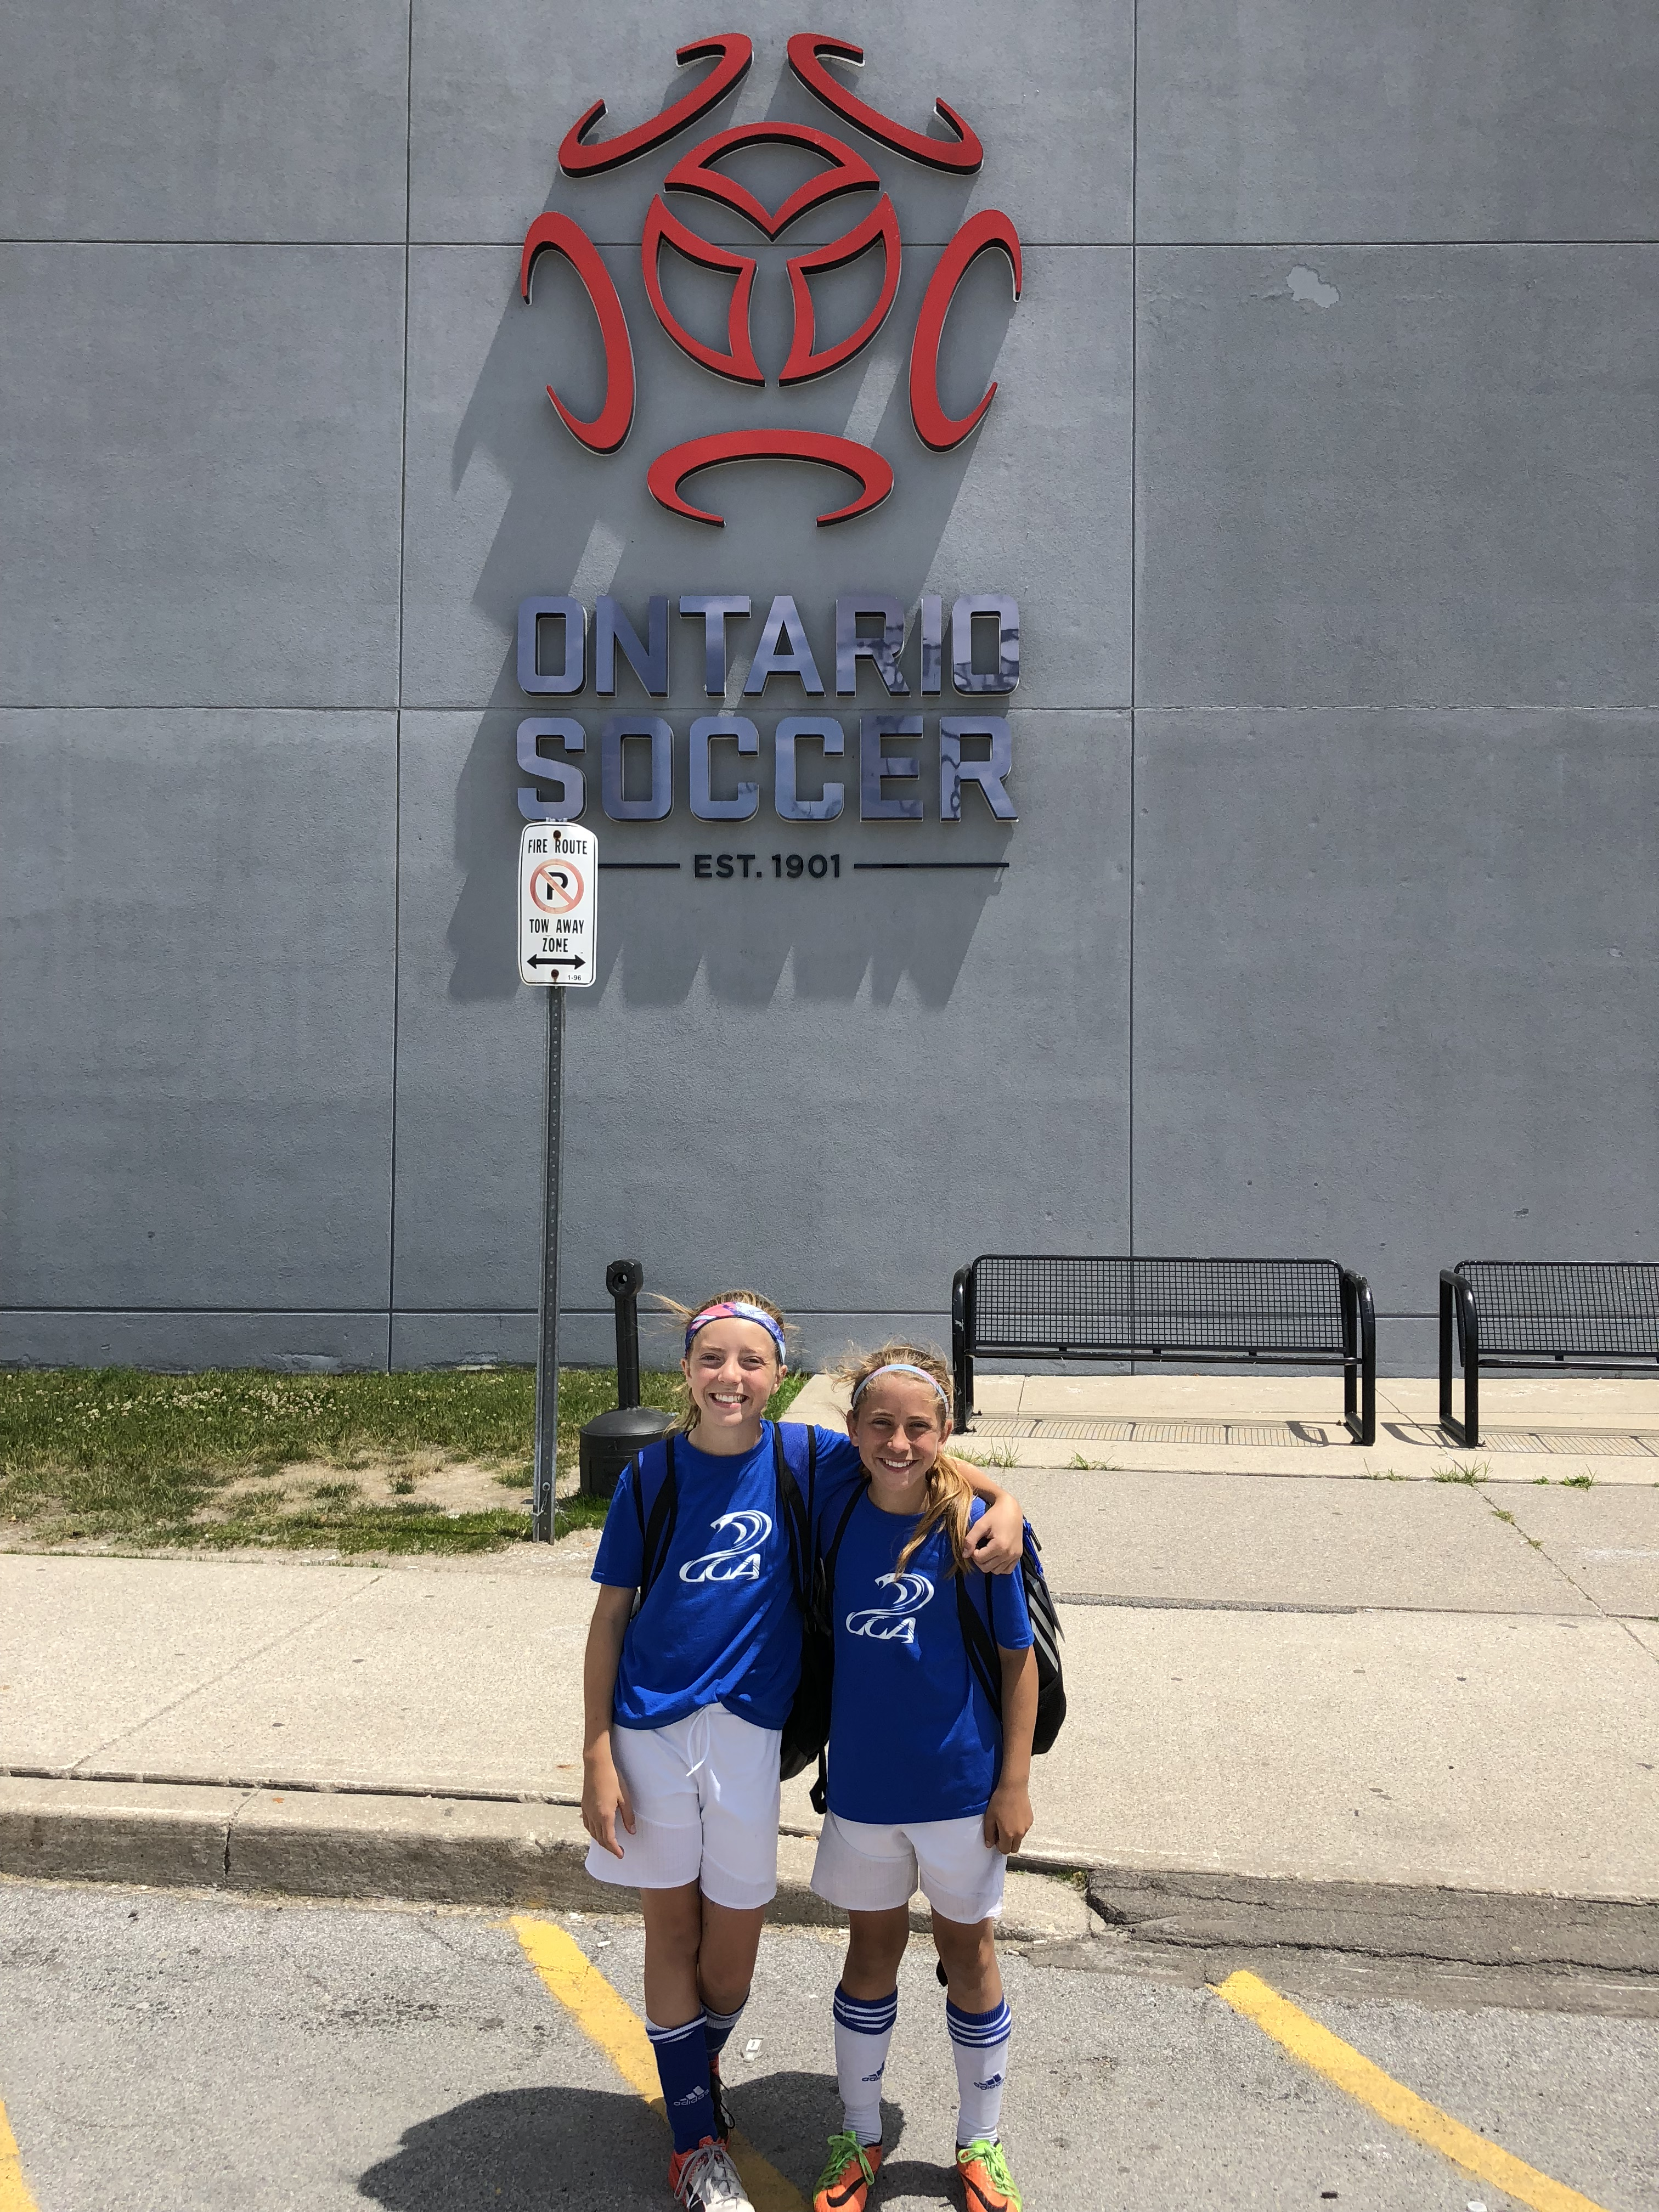 Two Academy players selected to represent Canada at the Danone Cup in Spain!